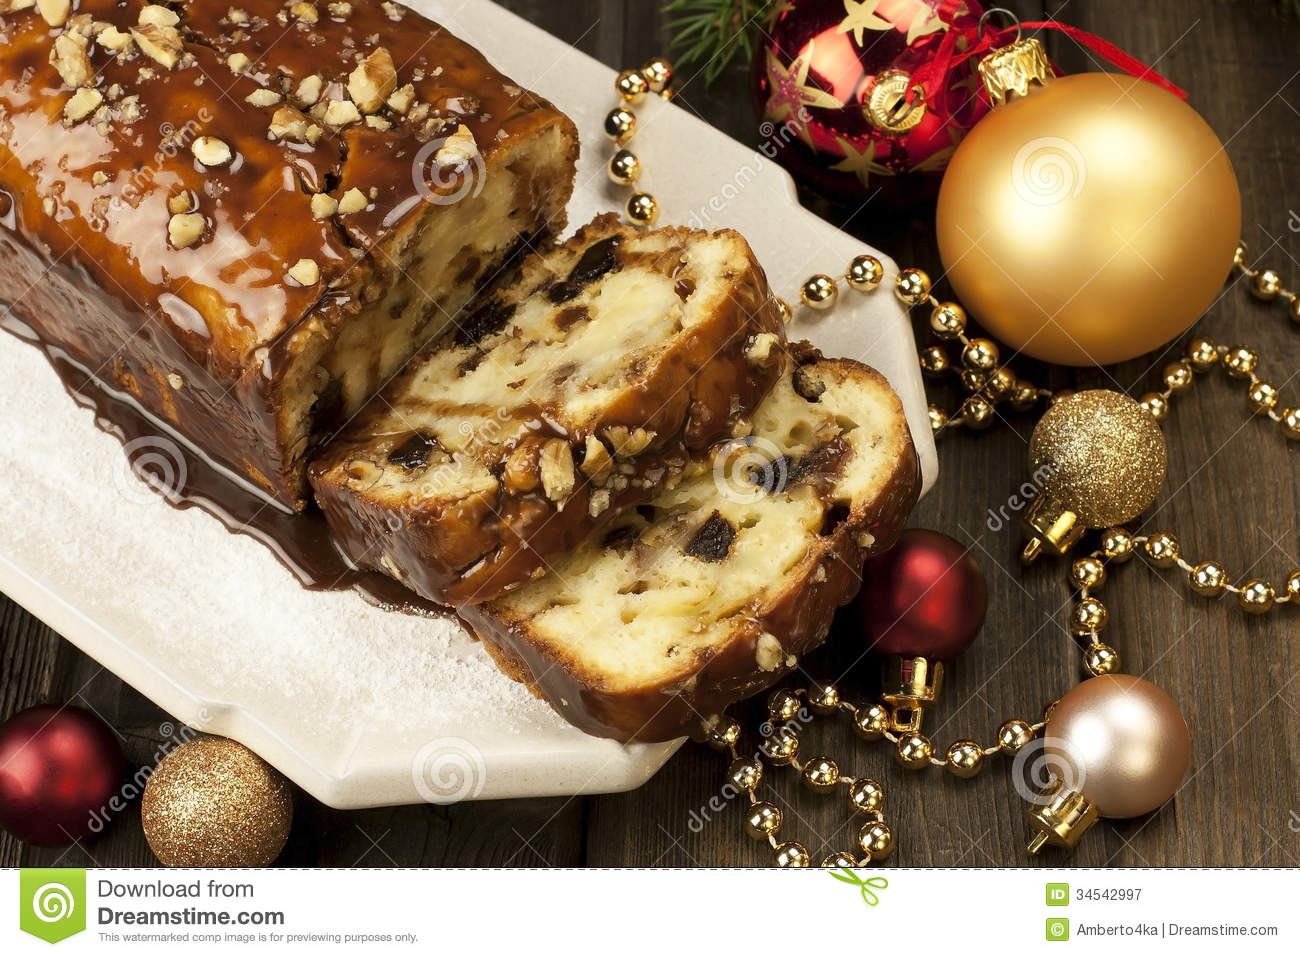 Slice of Christmas cake decorated with walnuts